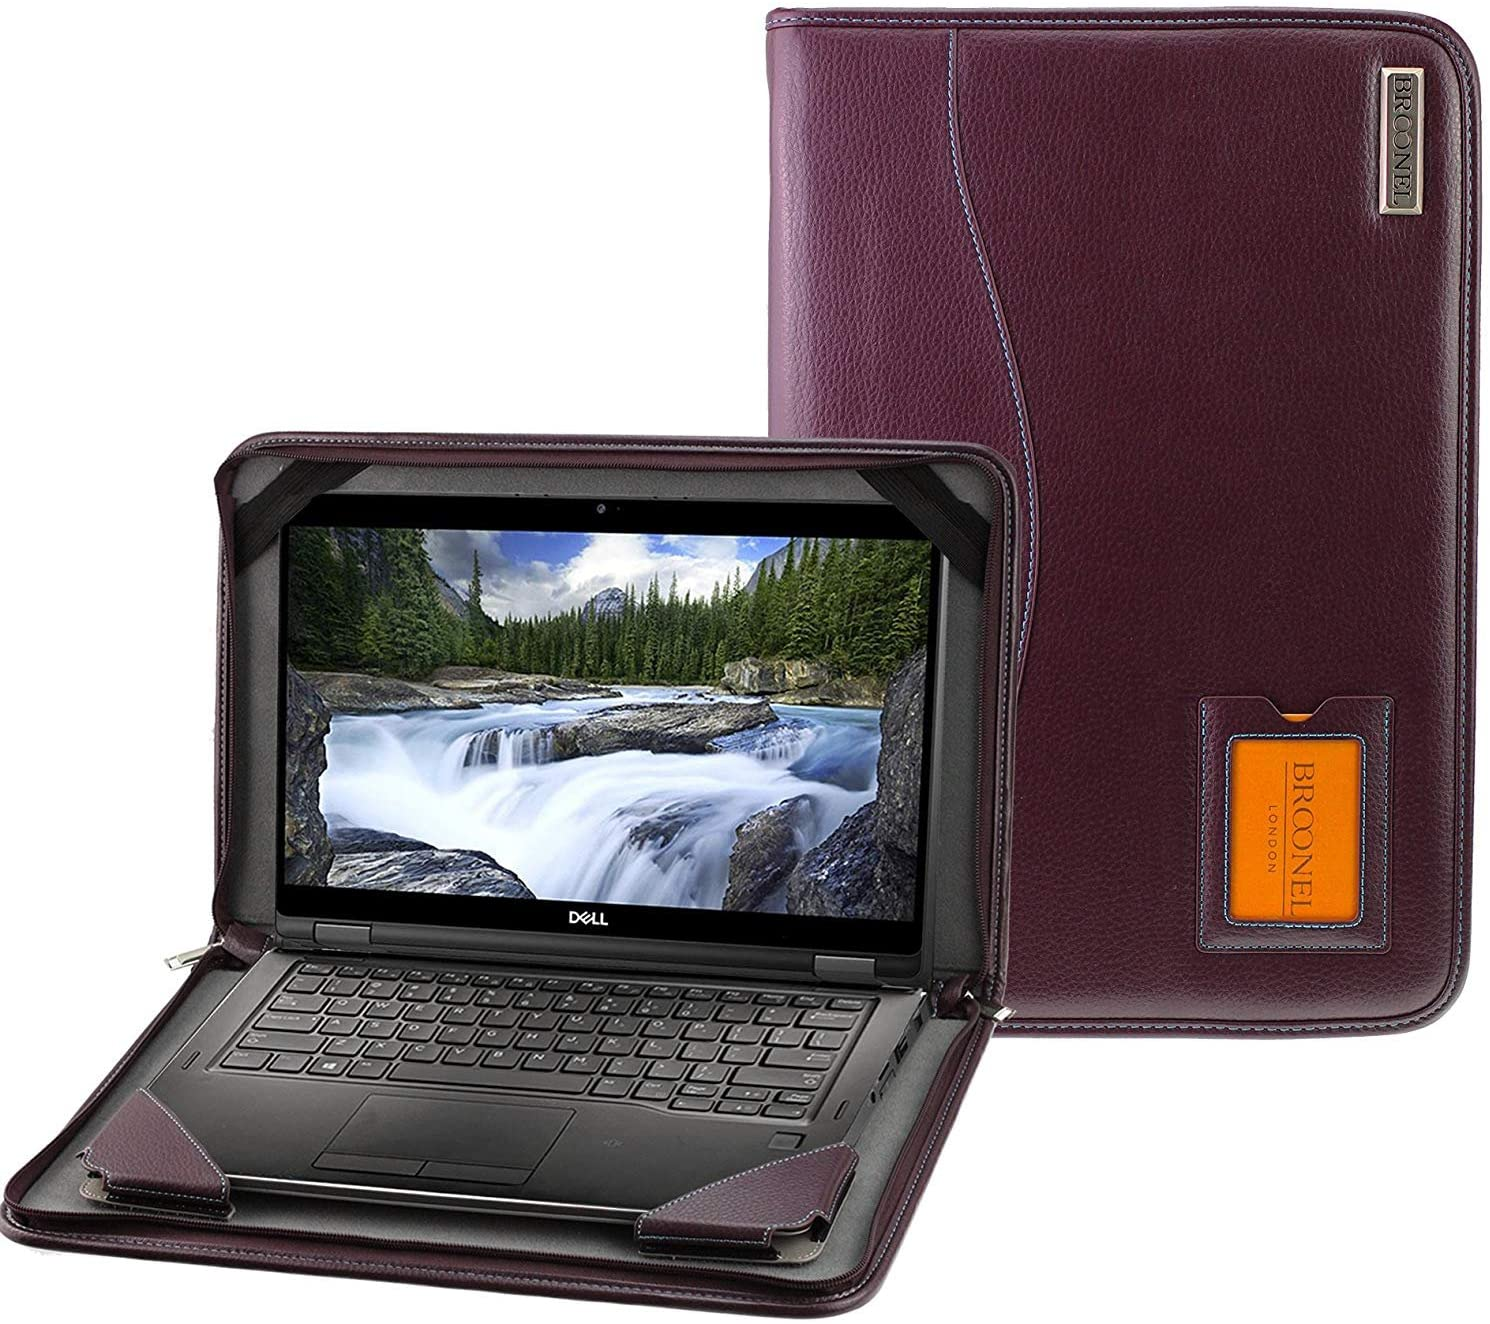 Broonel - Contour Series - Purple Heavy Duty Leather Protective Case Cover Compatible with The Dell Latitiude 7400